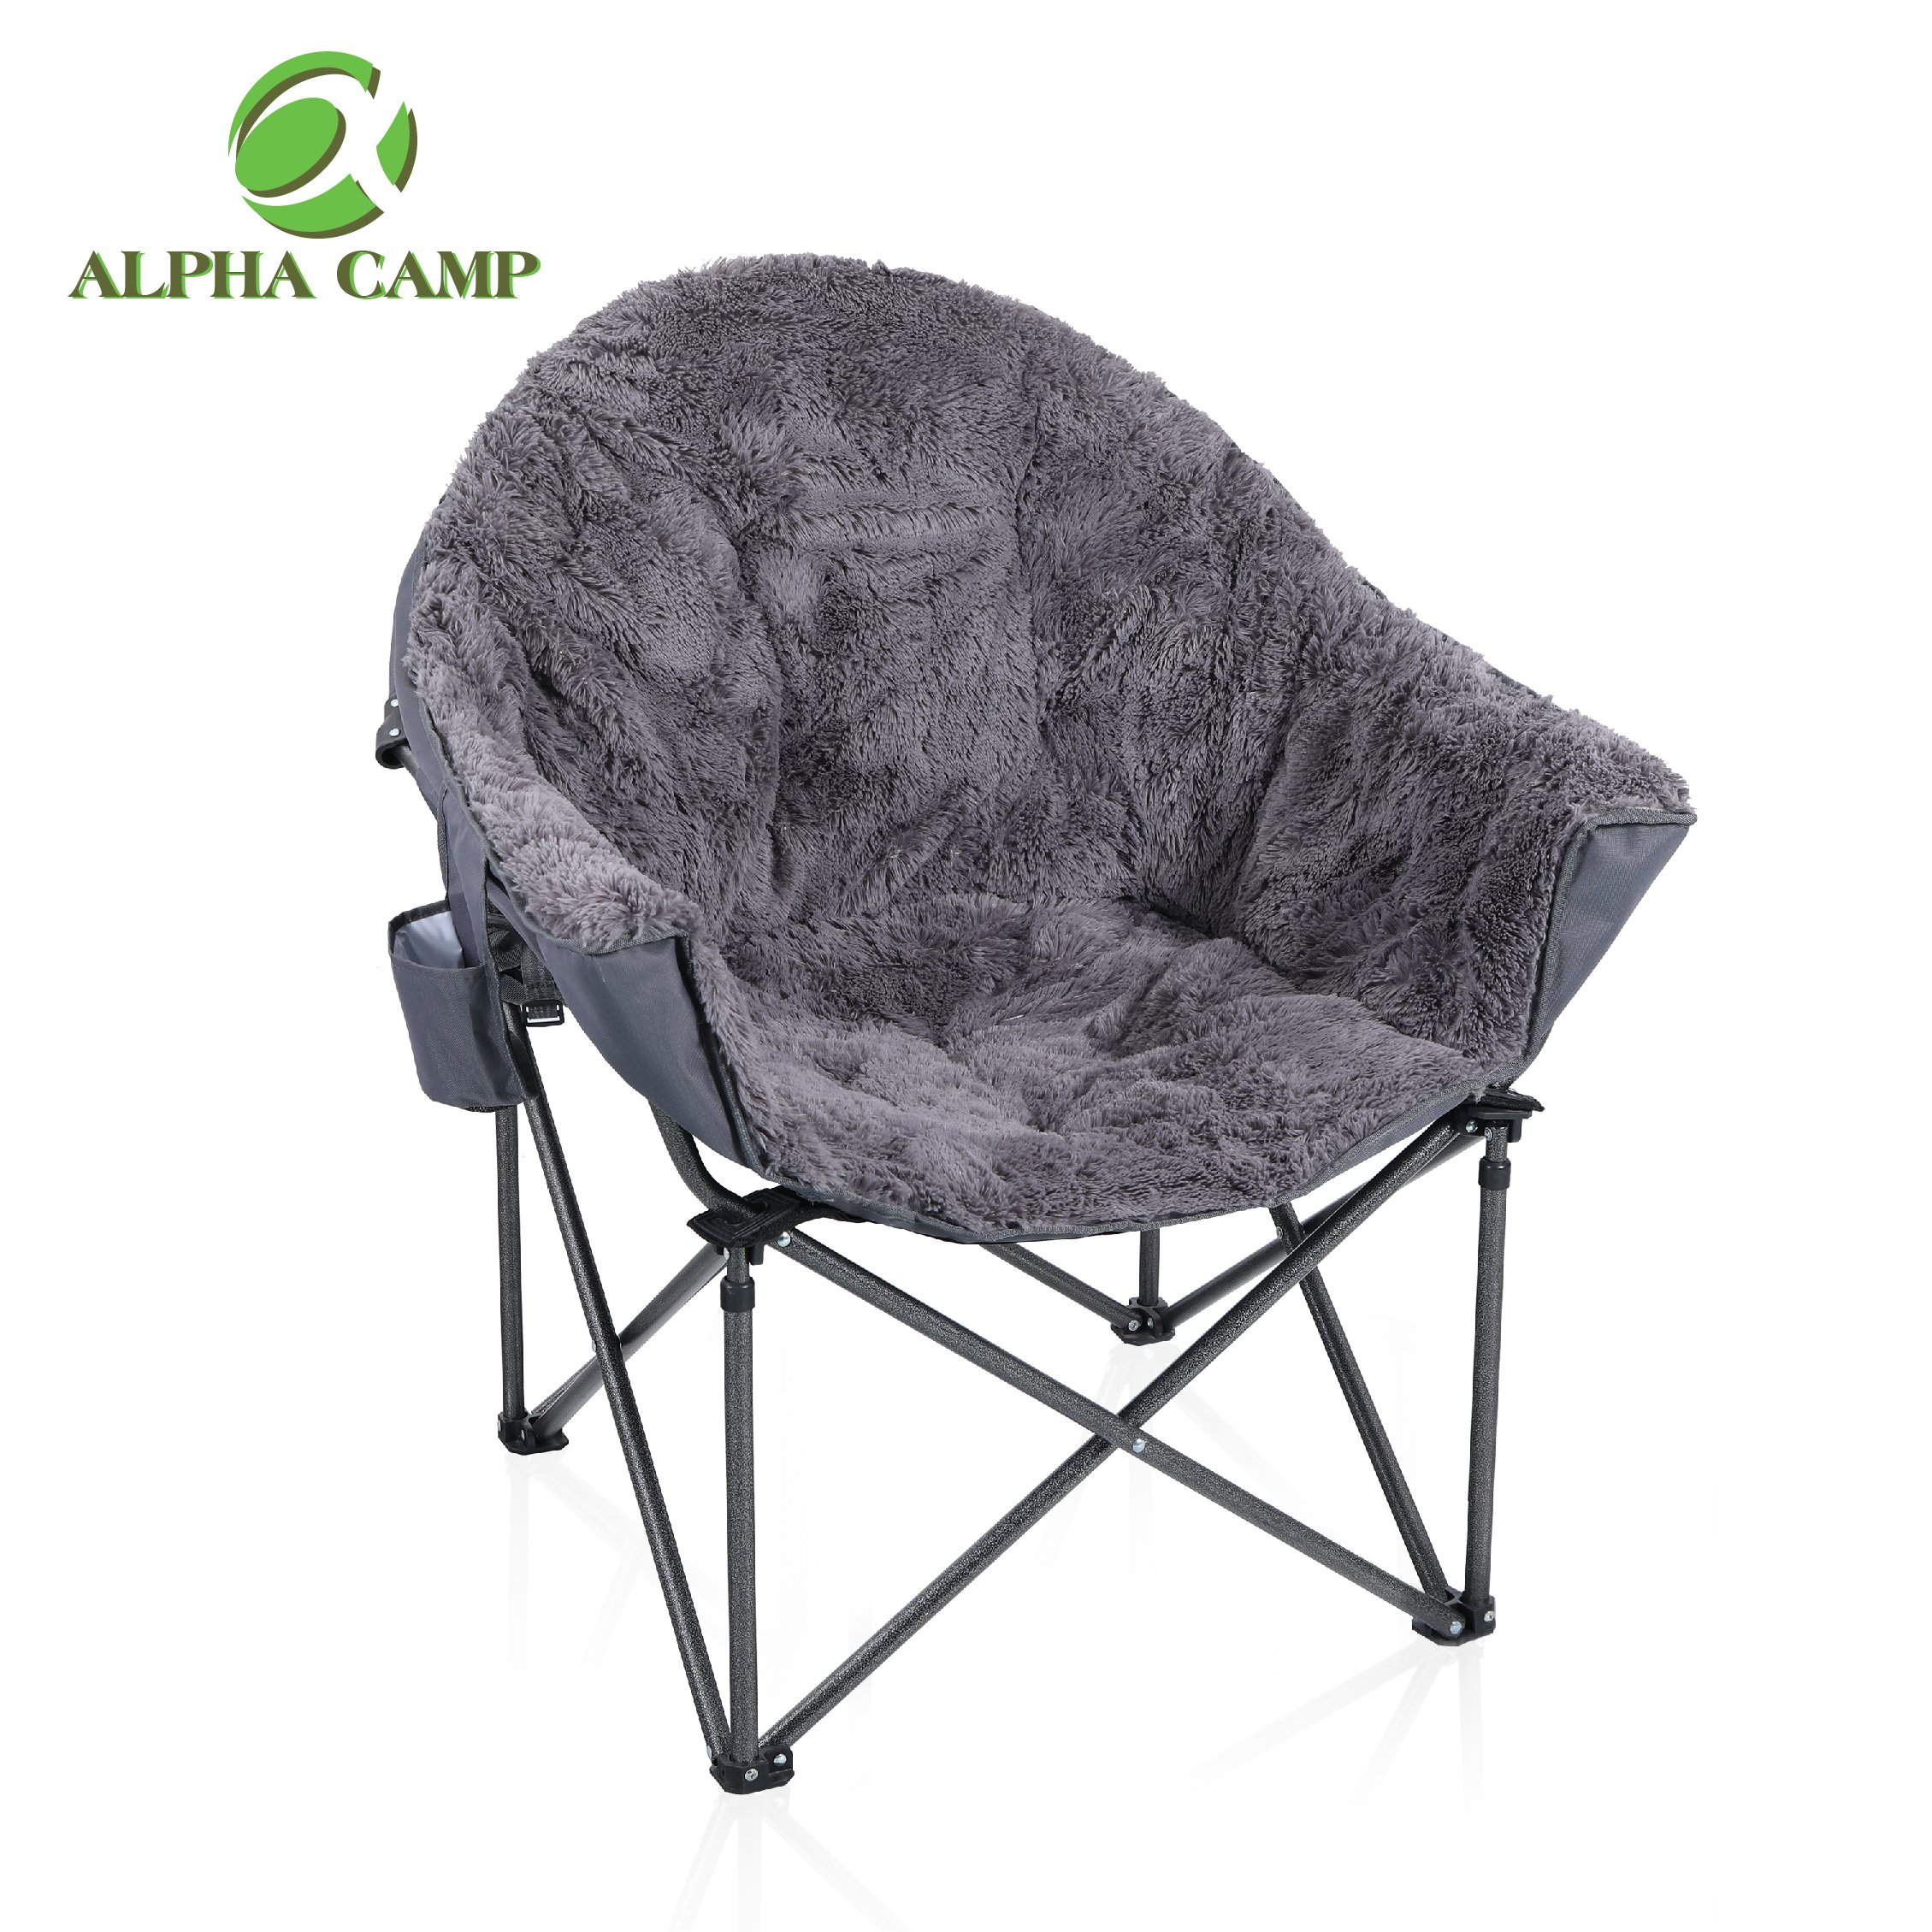 ALPHA CAMP Plush Moon Saucer Chair with Carry Bag - Supports 350 LBS, Gray by ALPHA CAMP